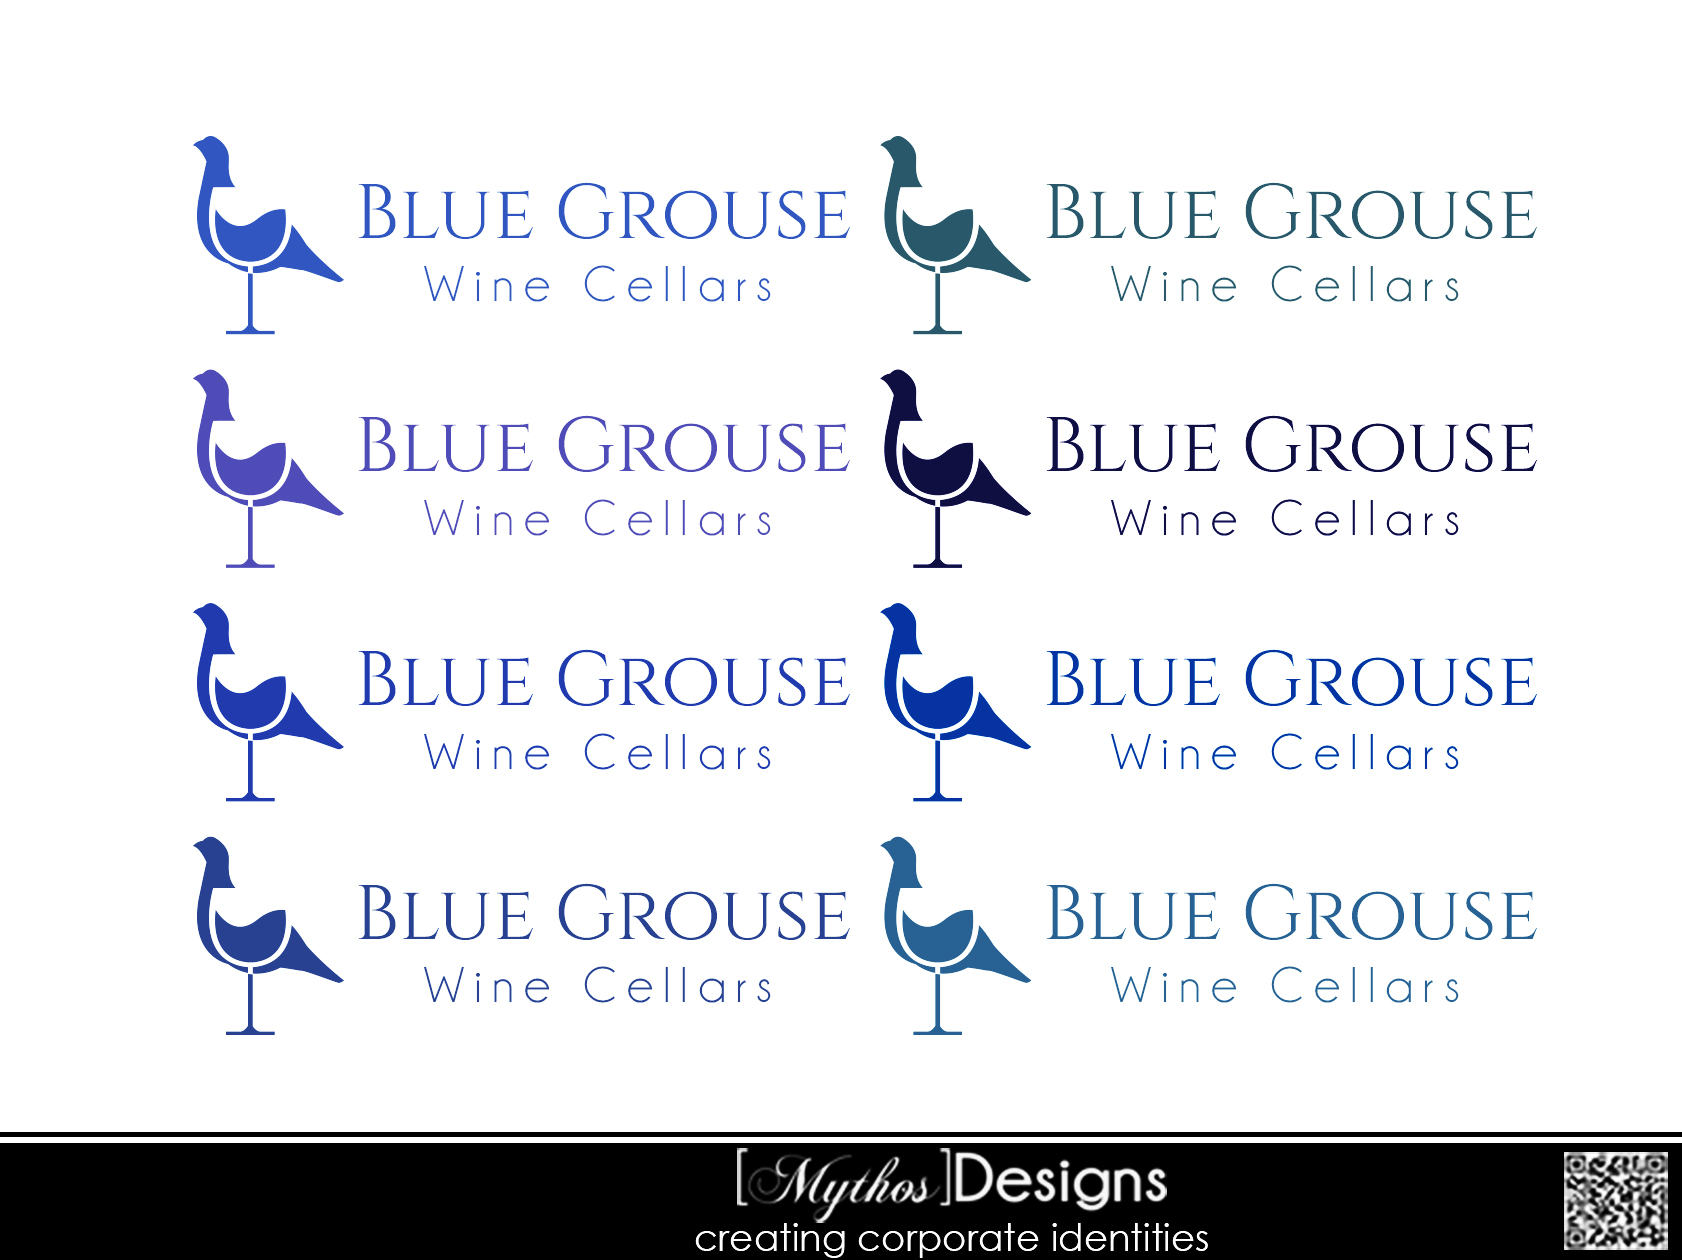 Logo Design by Mythos Designs - Entry No. 62 in the Logo Design Contest Creative Logo Design for Blue Grouse Wine Cellars.